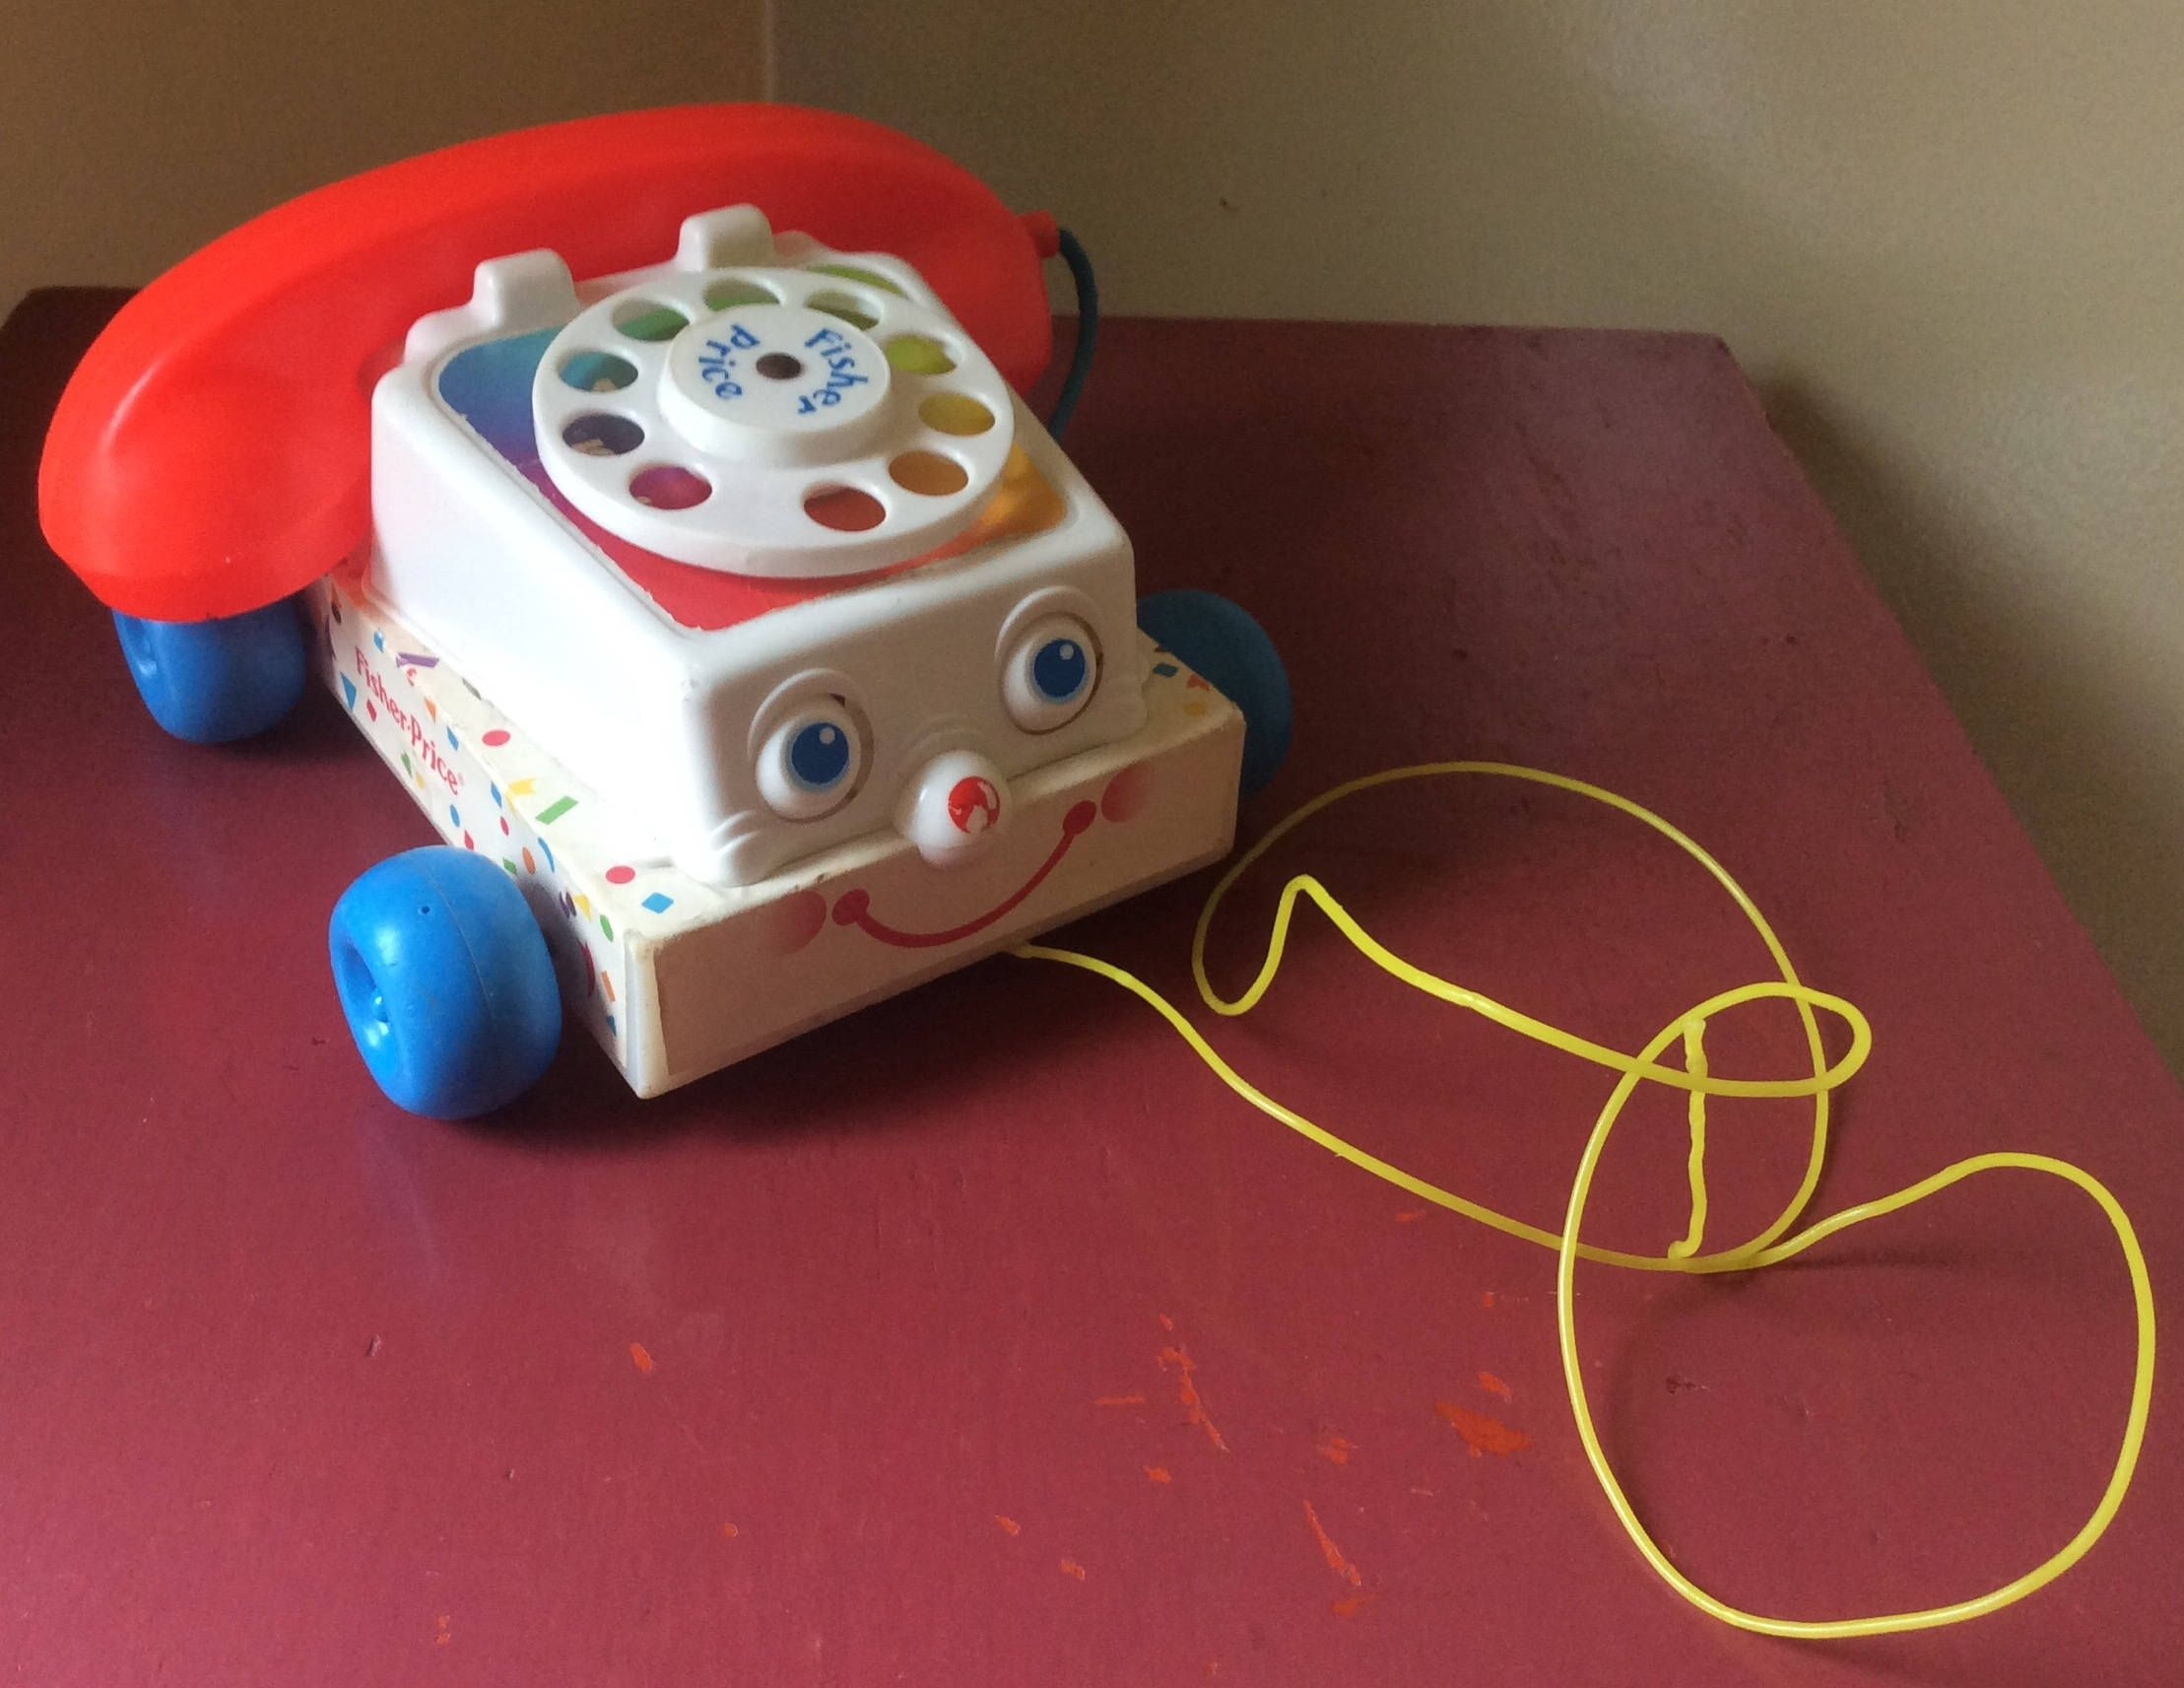 medium resolution of vintage authentic novelty fisher price retro rotary phone toy 1980s 1970s 1960s for children nostalgia pull toy telephone toy by mandemsclevercache on etsy